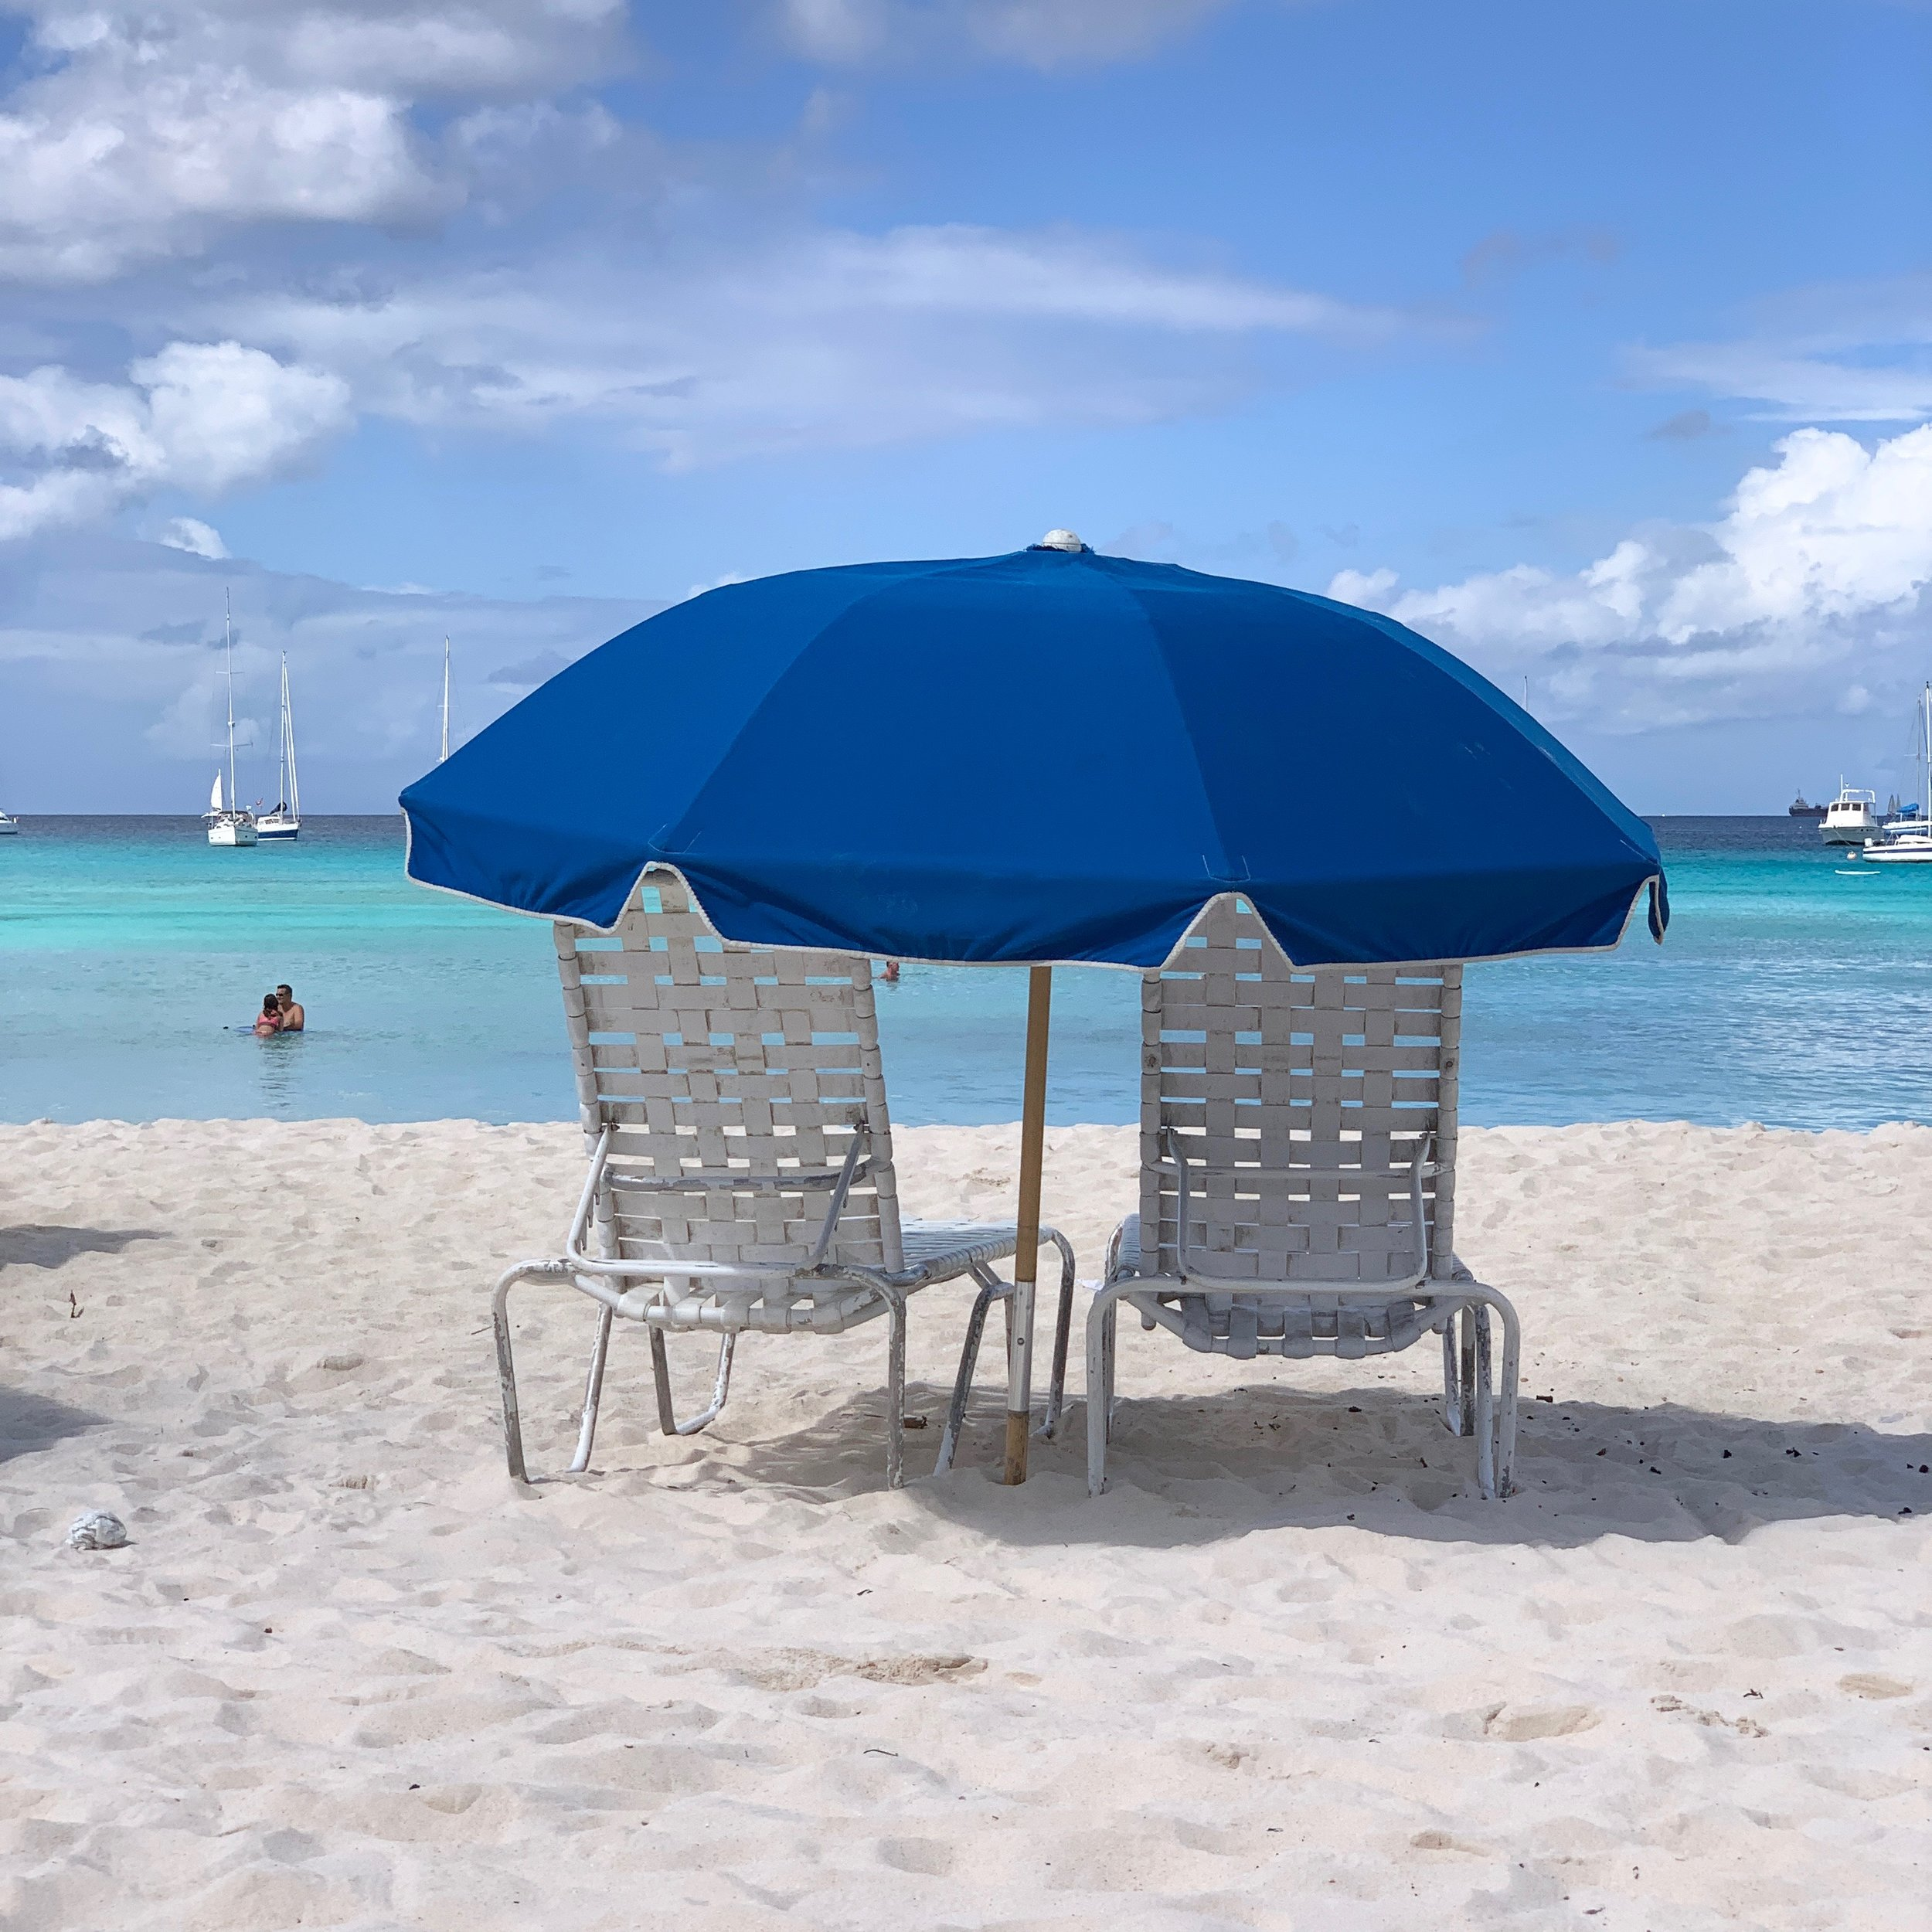 I saved you a seat on Pebbles Beach! How soon can you get here?